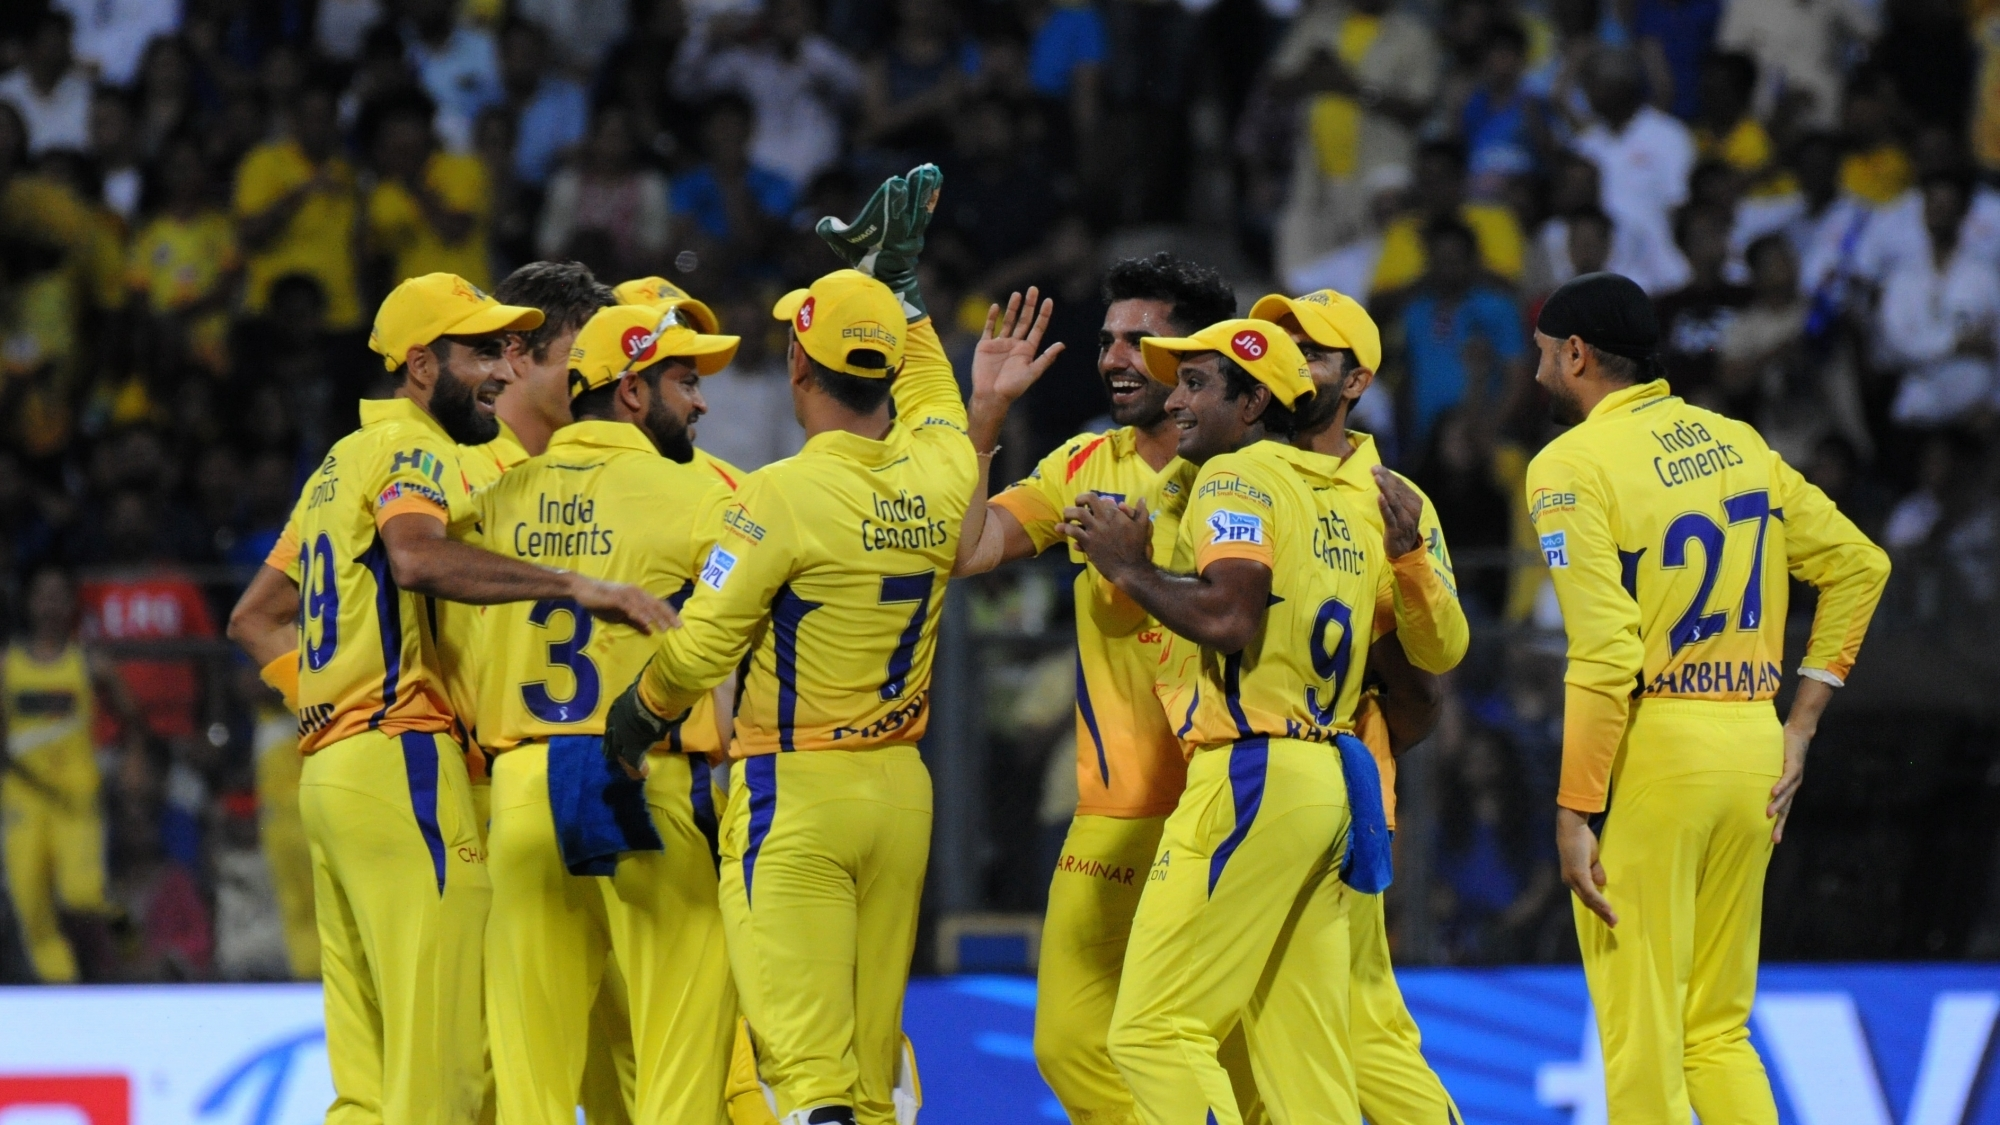 IPL 2018: Match 1 - MI vs CSK: Twitter reacts to a majestic CSK victory from the brink of defeat